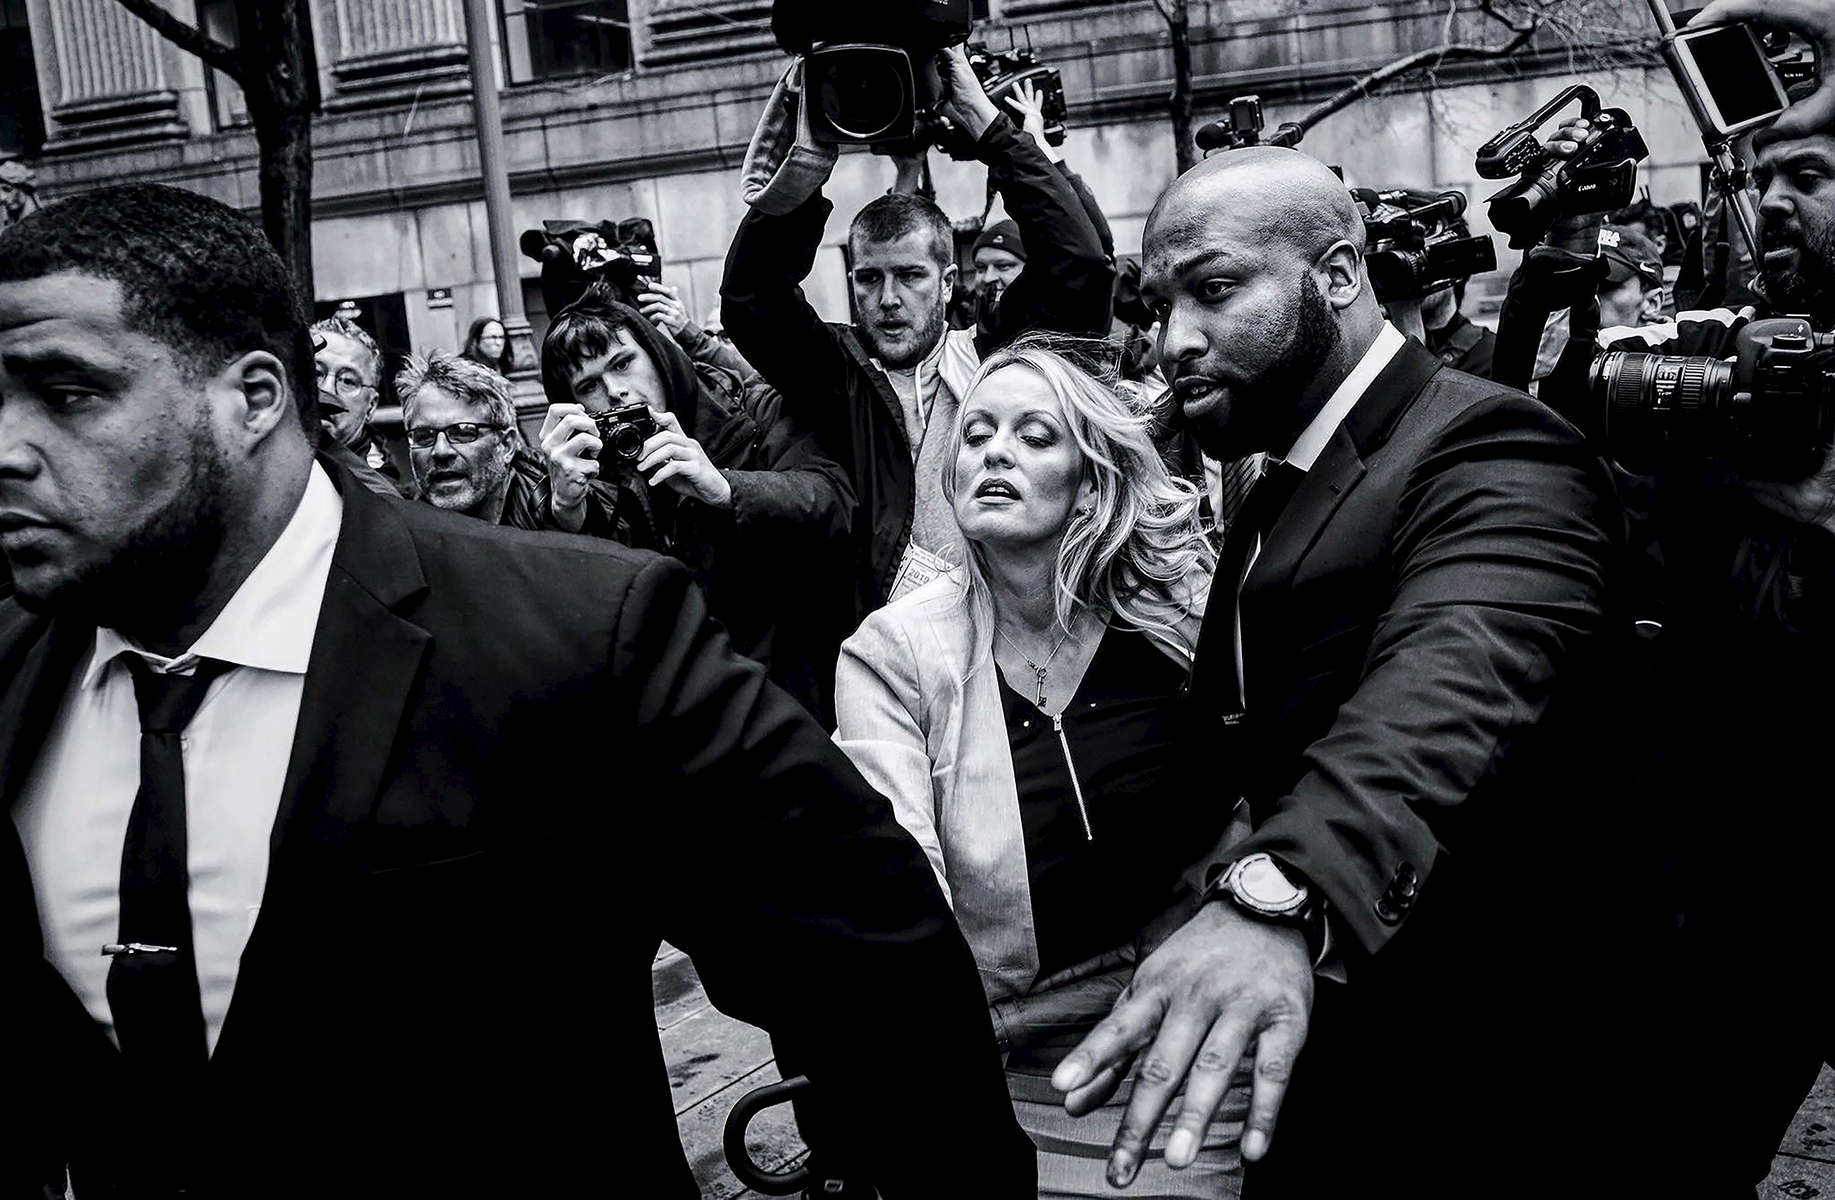 Adult film actress Stormy Daniels (Stephanie Clifford) arrives to Federal Court with her lawyer Michael Avenatti (not seen) at the United States District Court Southern District of New York after a hearing related to Michael Cohen, President Trump's longtime personal attorney and confidante, April 16, 2018 in New York City. Cohen and lawyers representing President Trump are asking the court to block Justice Department officials from reading documents and materials related to his Cohen's relationship with President Trump that they believe should be protected by attorney-client privilege. Officials with the FBI, armed with a search warrant, raided Cohen's office and two private residences last week.Photo by Yana Paskova/Getty Images